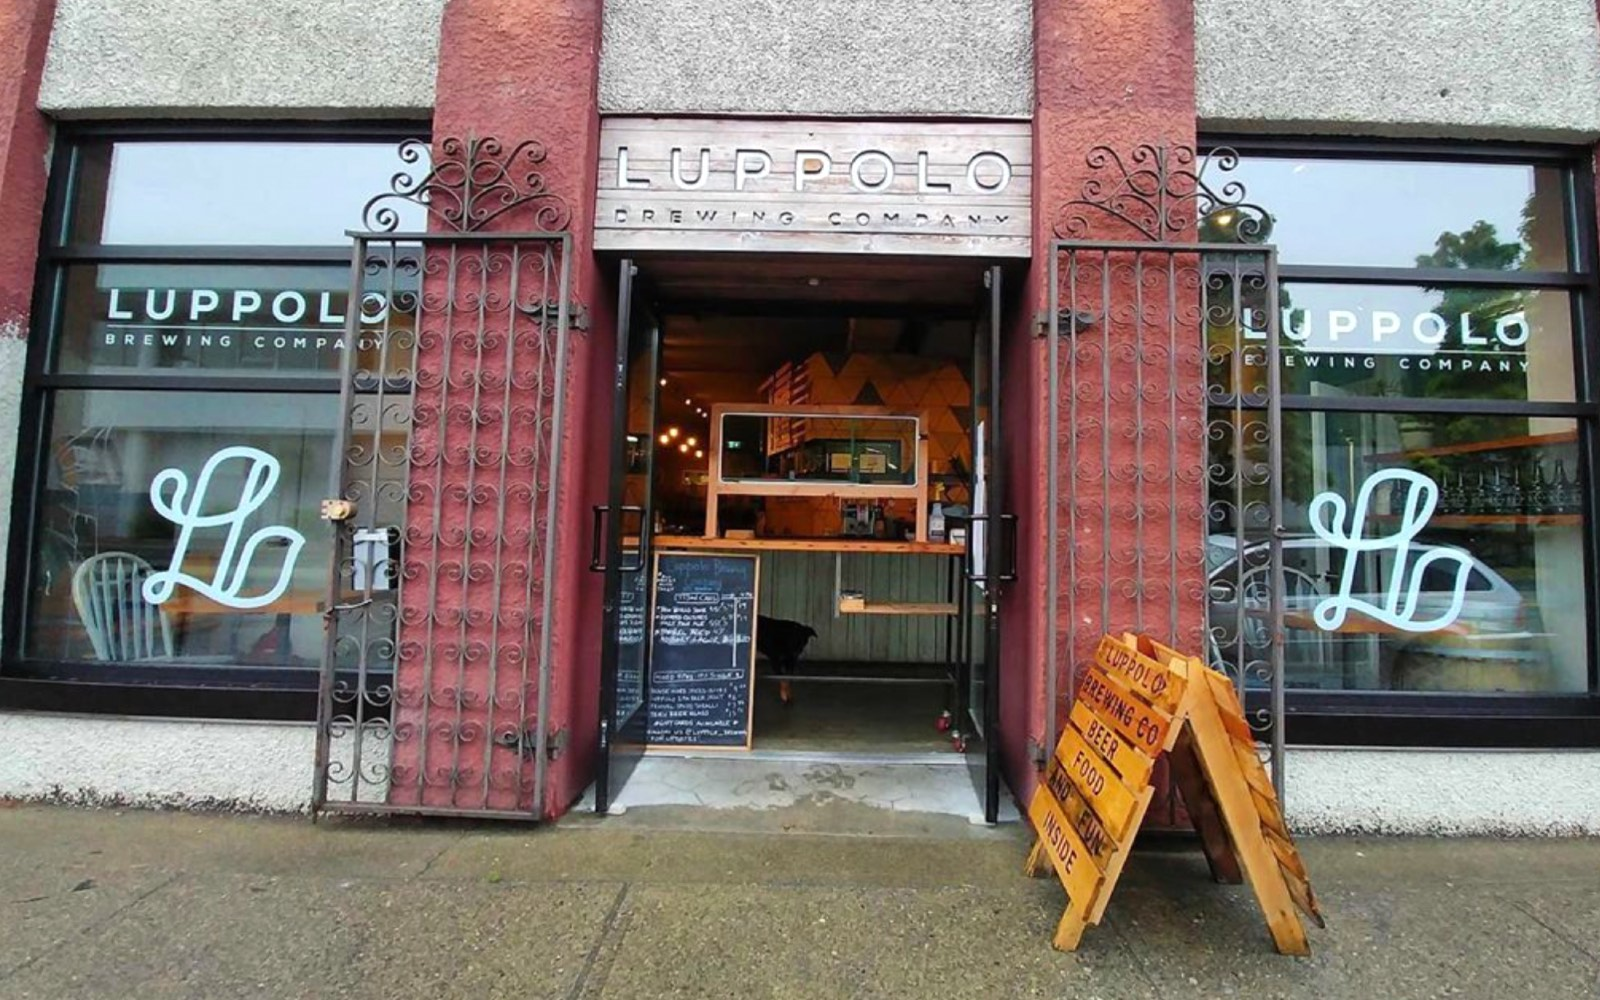 The entrance to Luppolo Brewing, East Vancouver